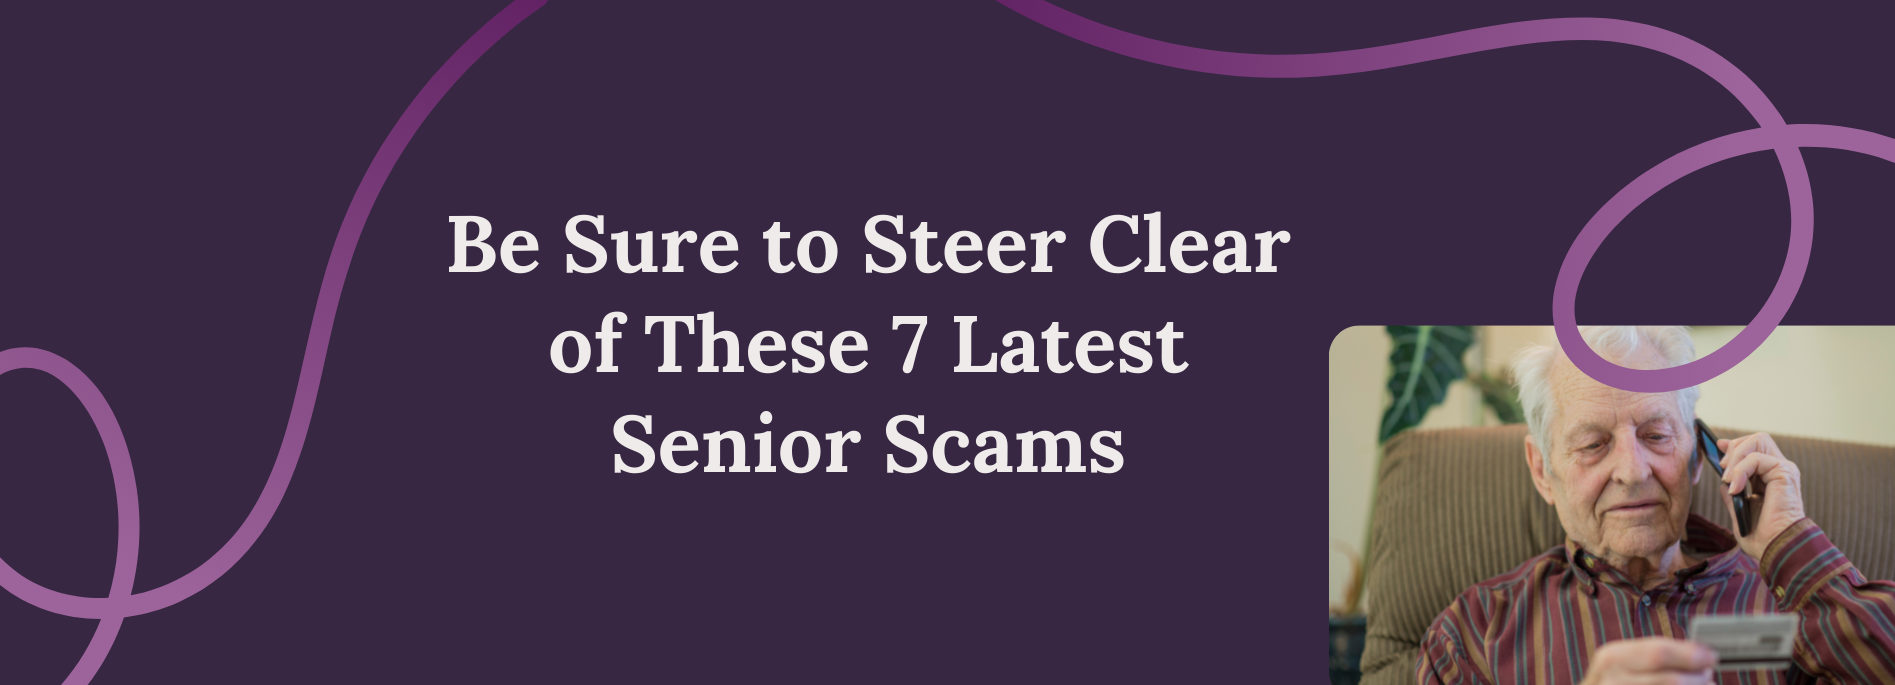 Be Sure to Steer Clear of These 7 Latest Senior Scams